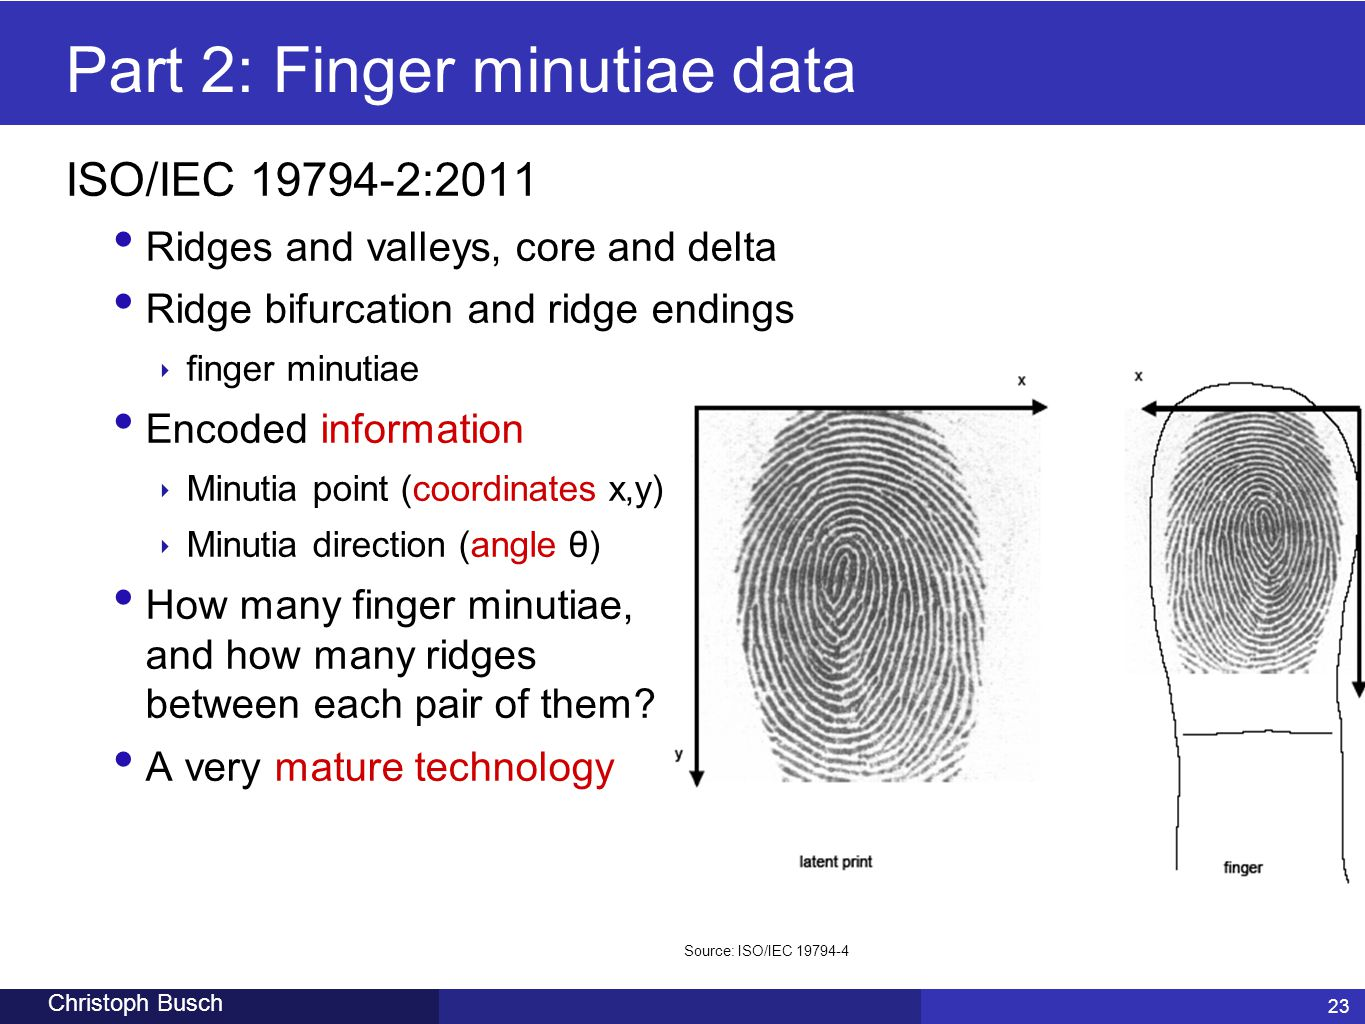 Part 2: Finger minutiae data